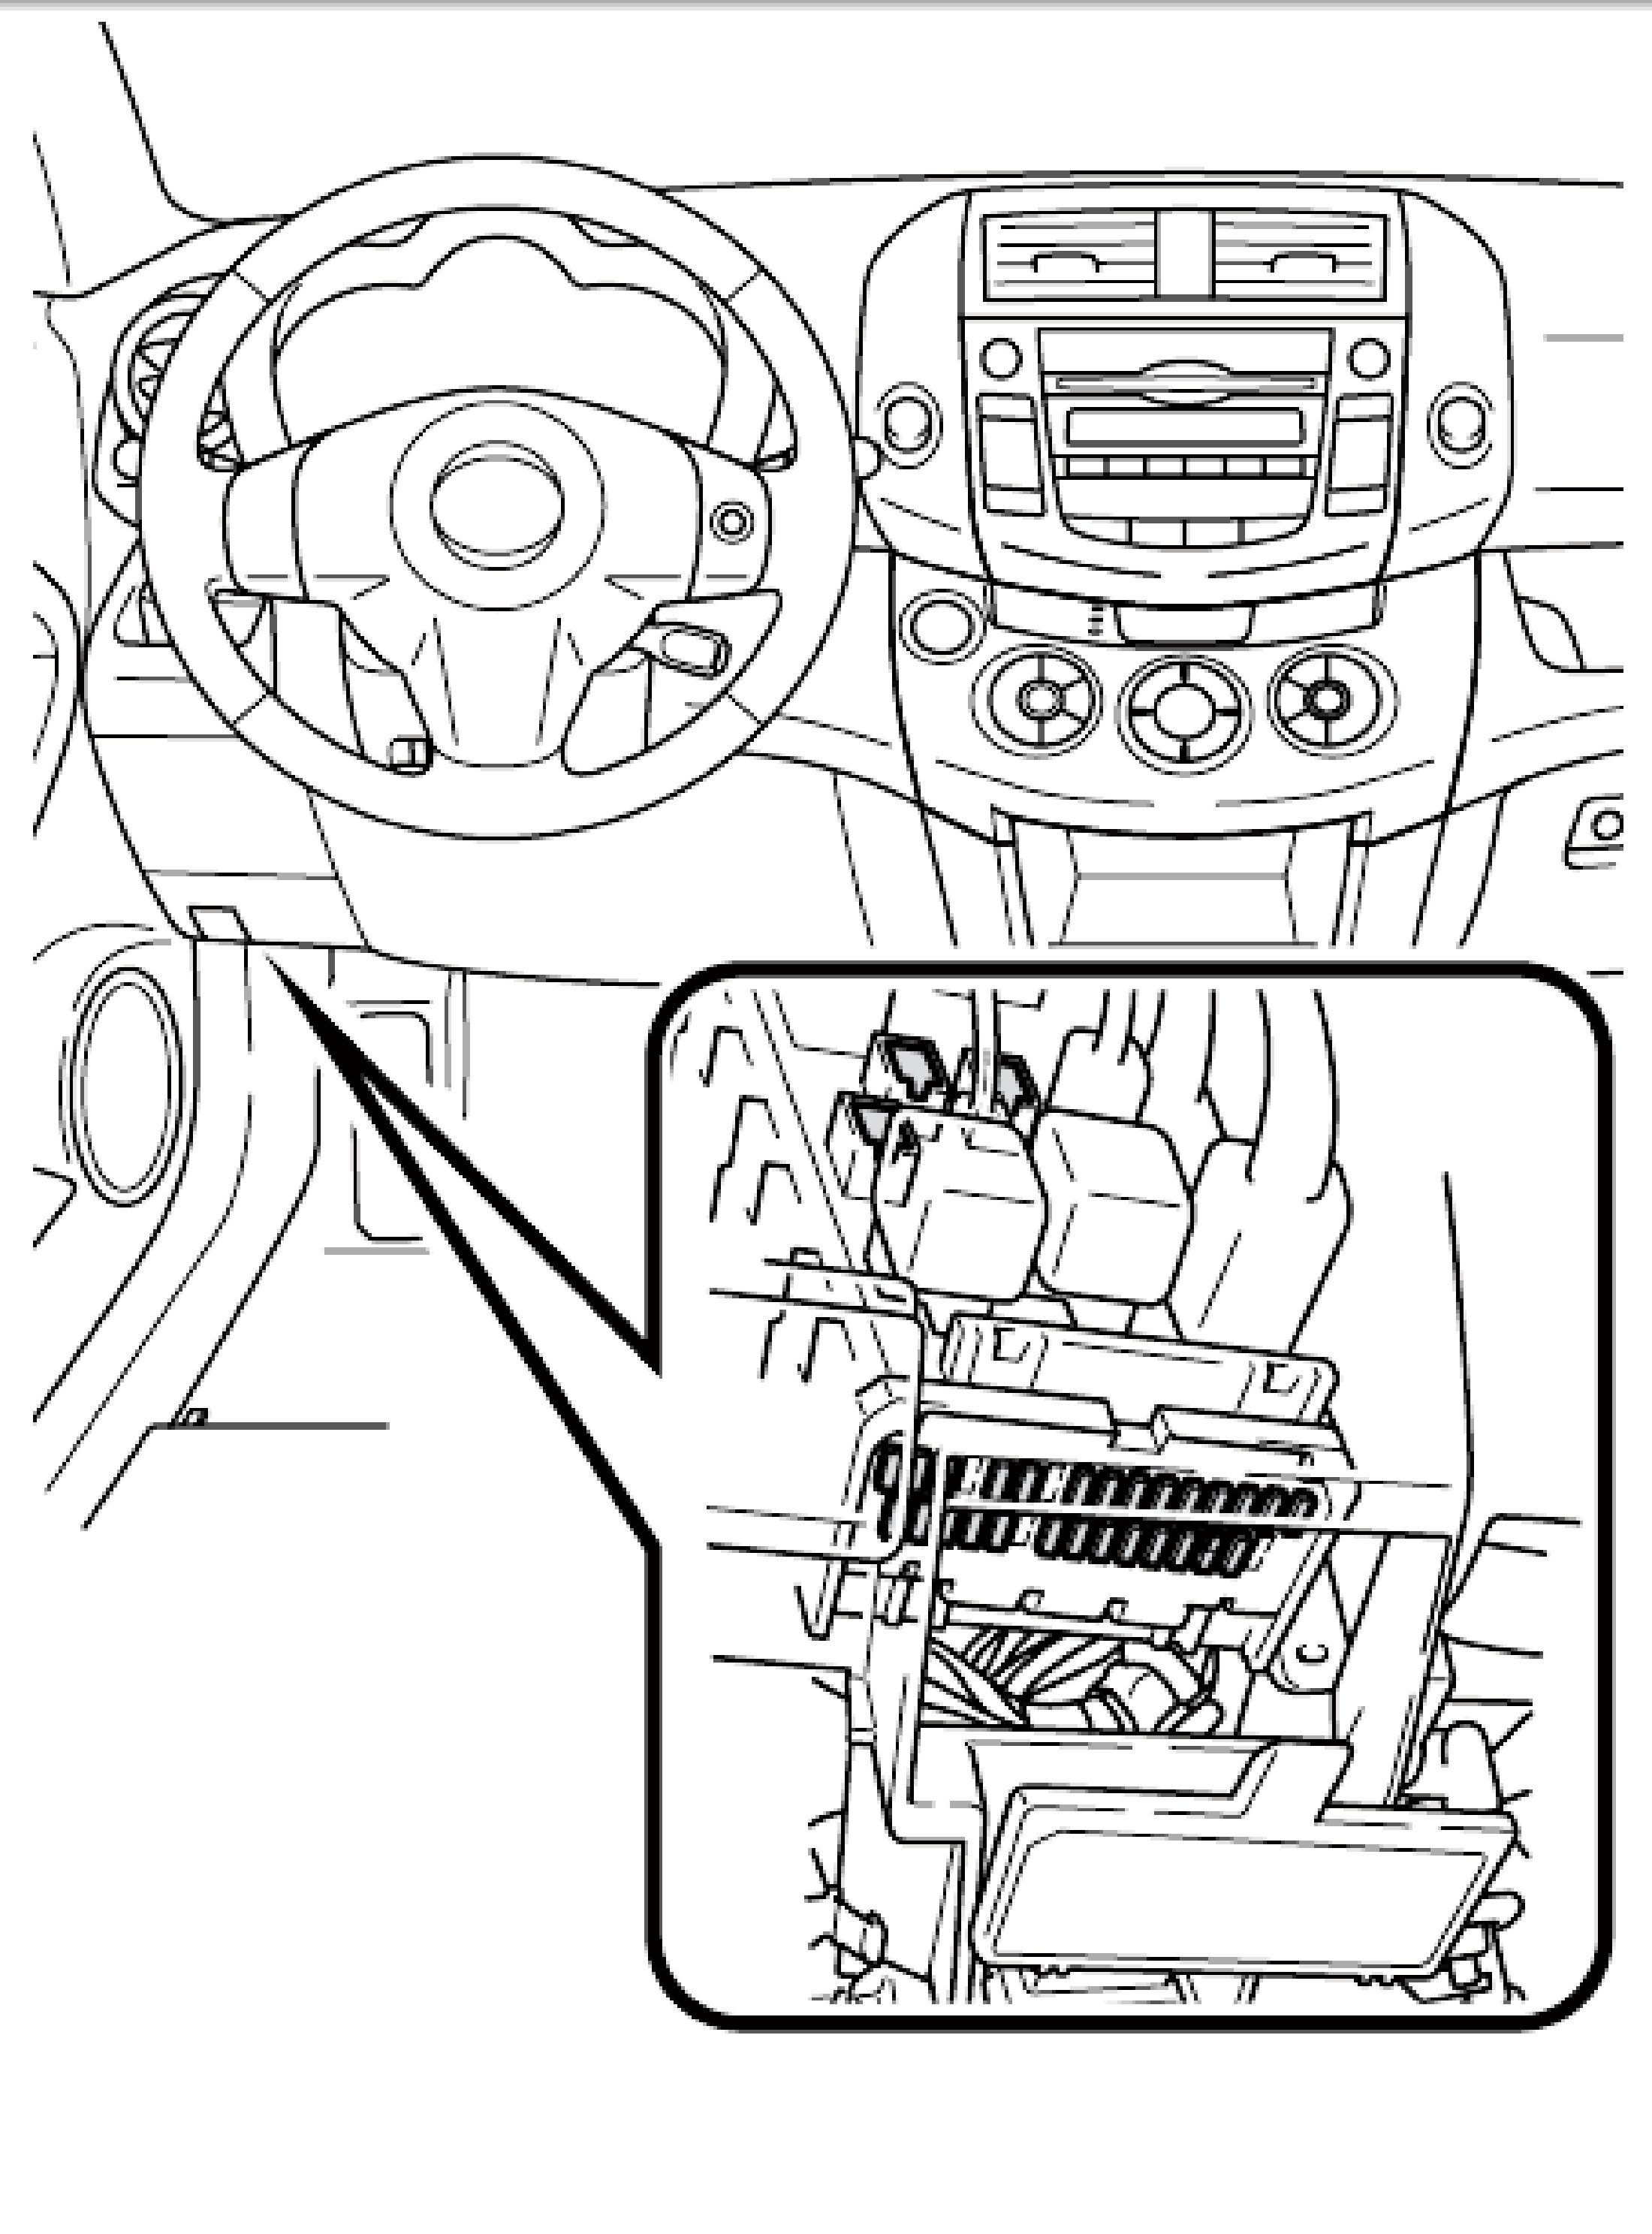 rav4 ac diagram 7 18 sg dbd de Basic AC Wiring Diagrams 2012 toyota rav4 engine diagram fuse box wiring diagram rh all cybersolution co ac wiring diagram window ac diagram